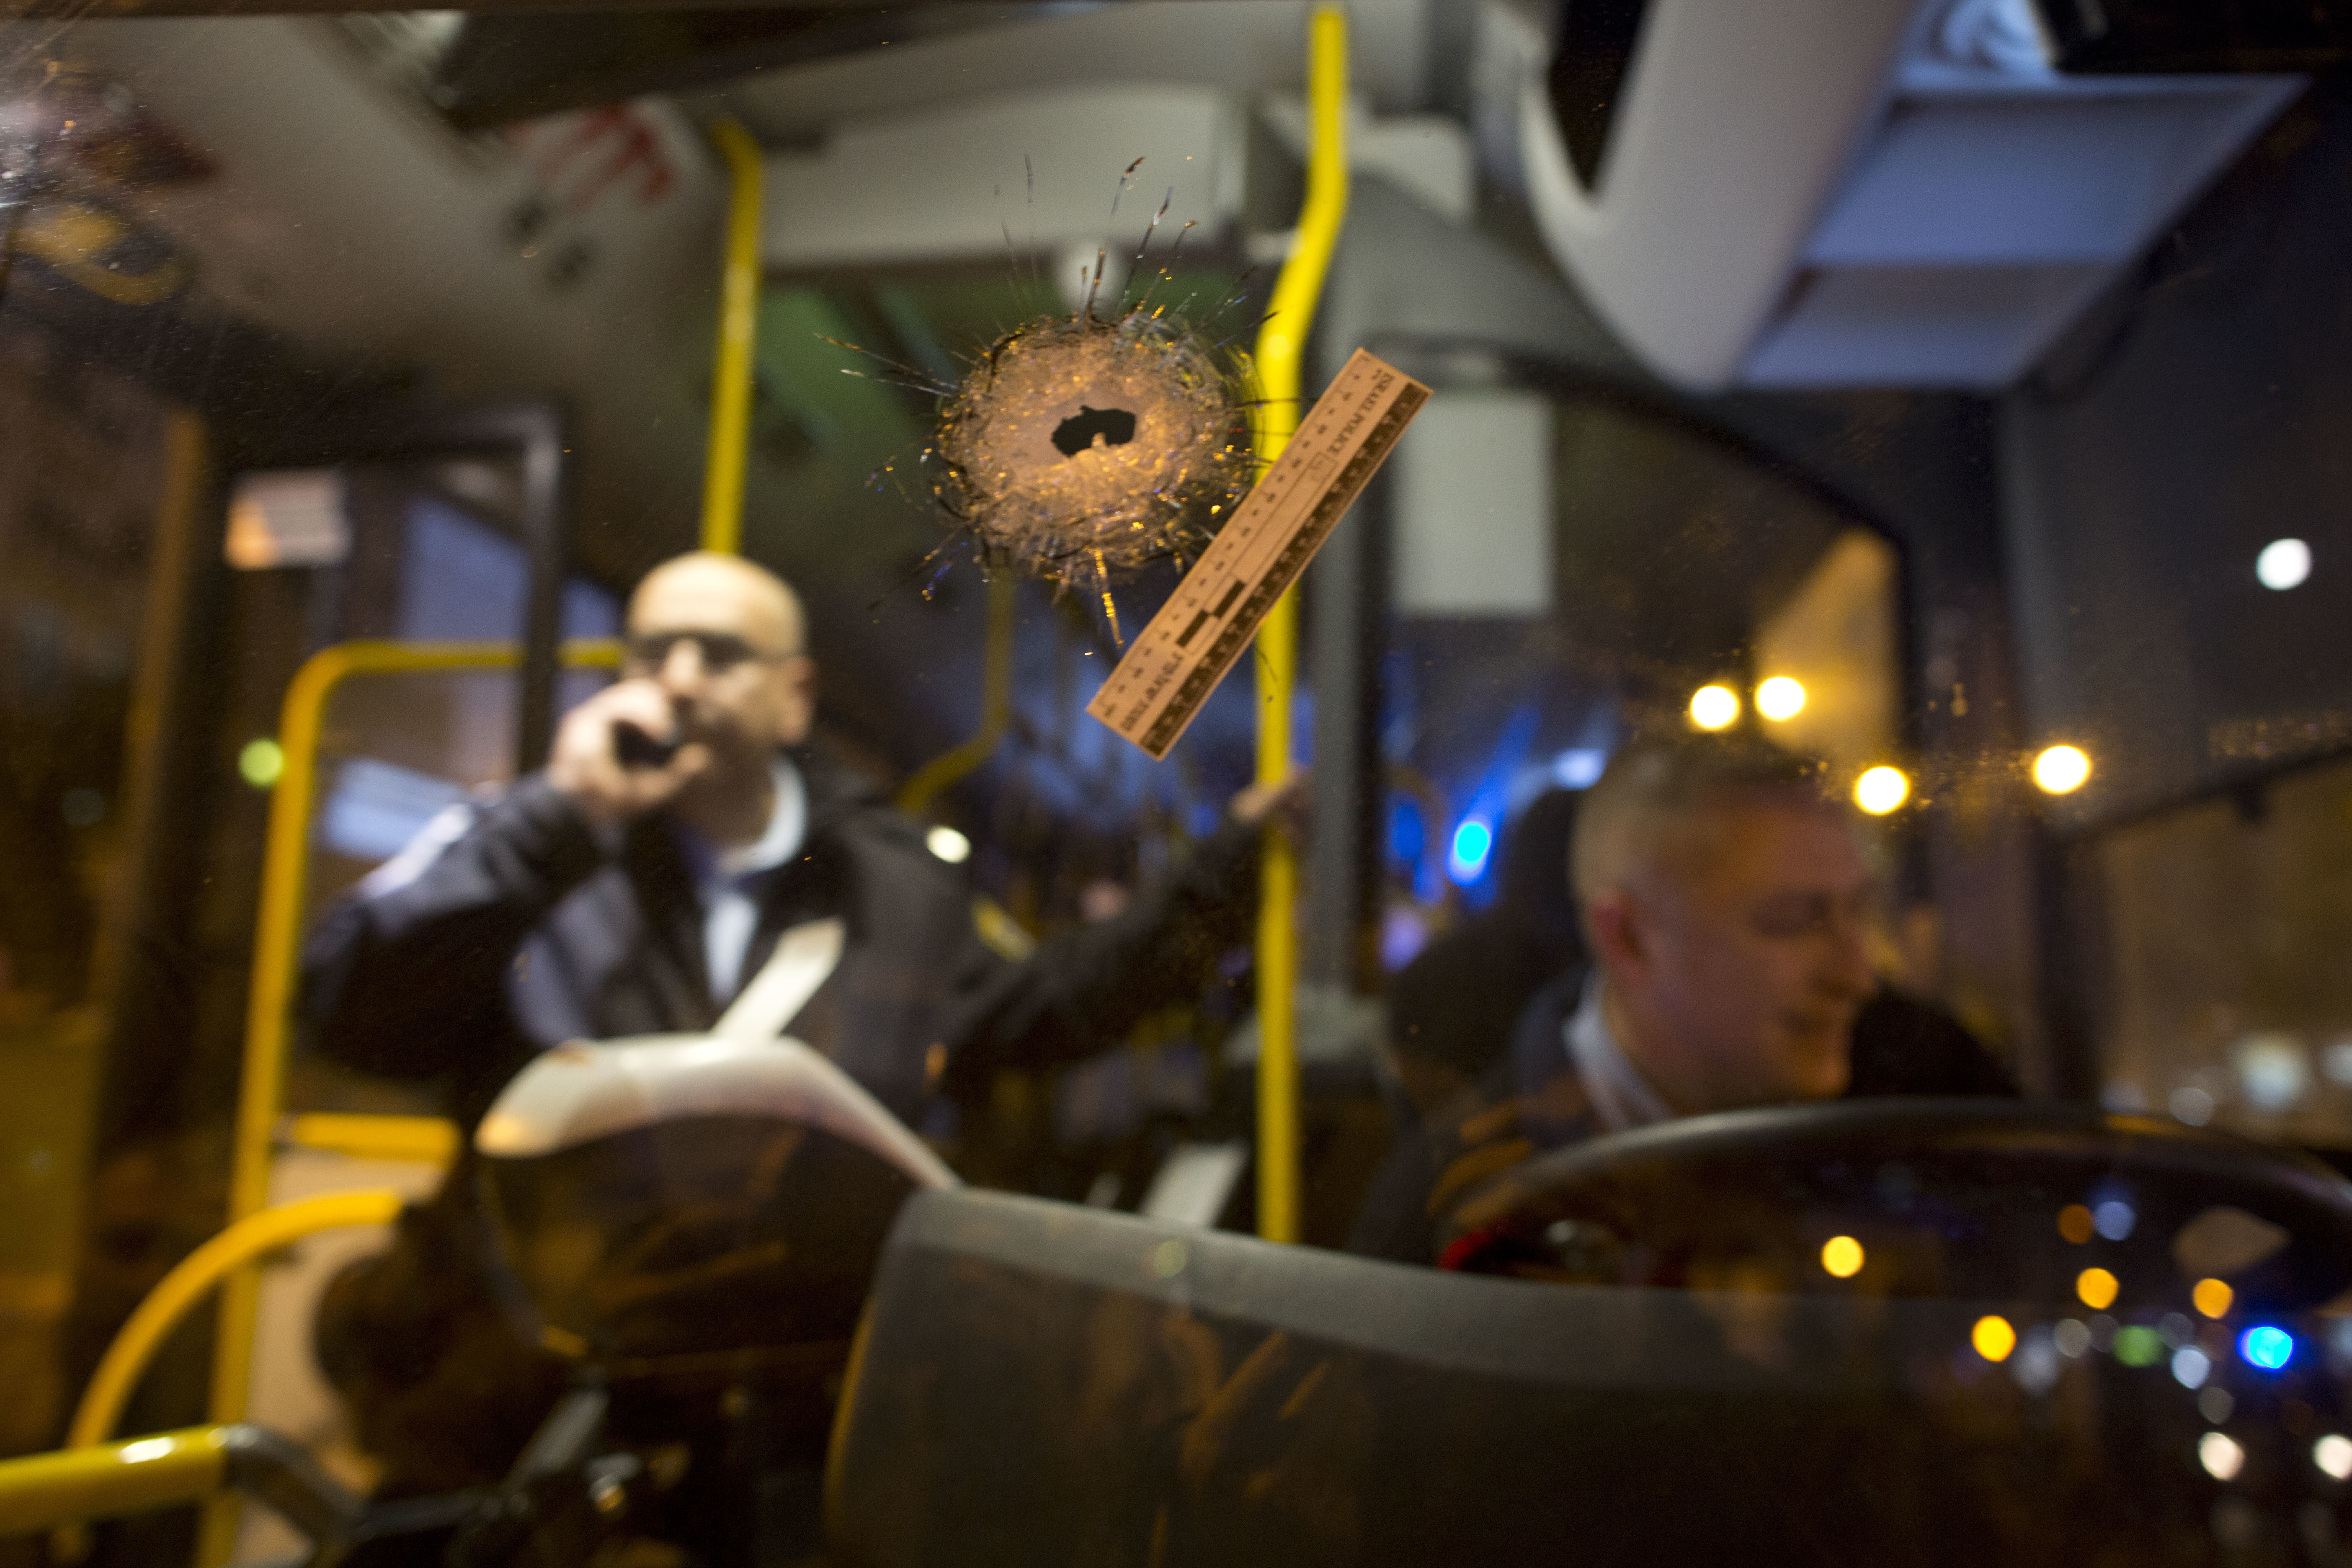 A bullet hole is seen on the windshield of a bus at the scene of a shooting attack in Petah Tikva, Israel on Feb. 9, 2017. (AP Photo/Oded Balilty)